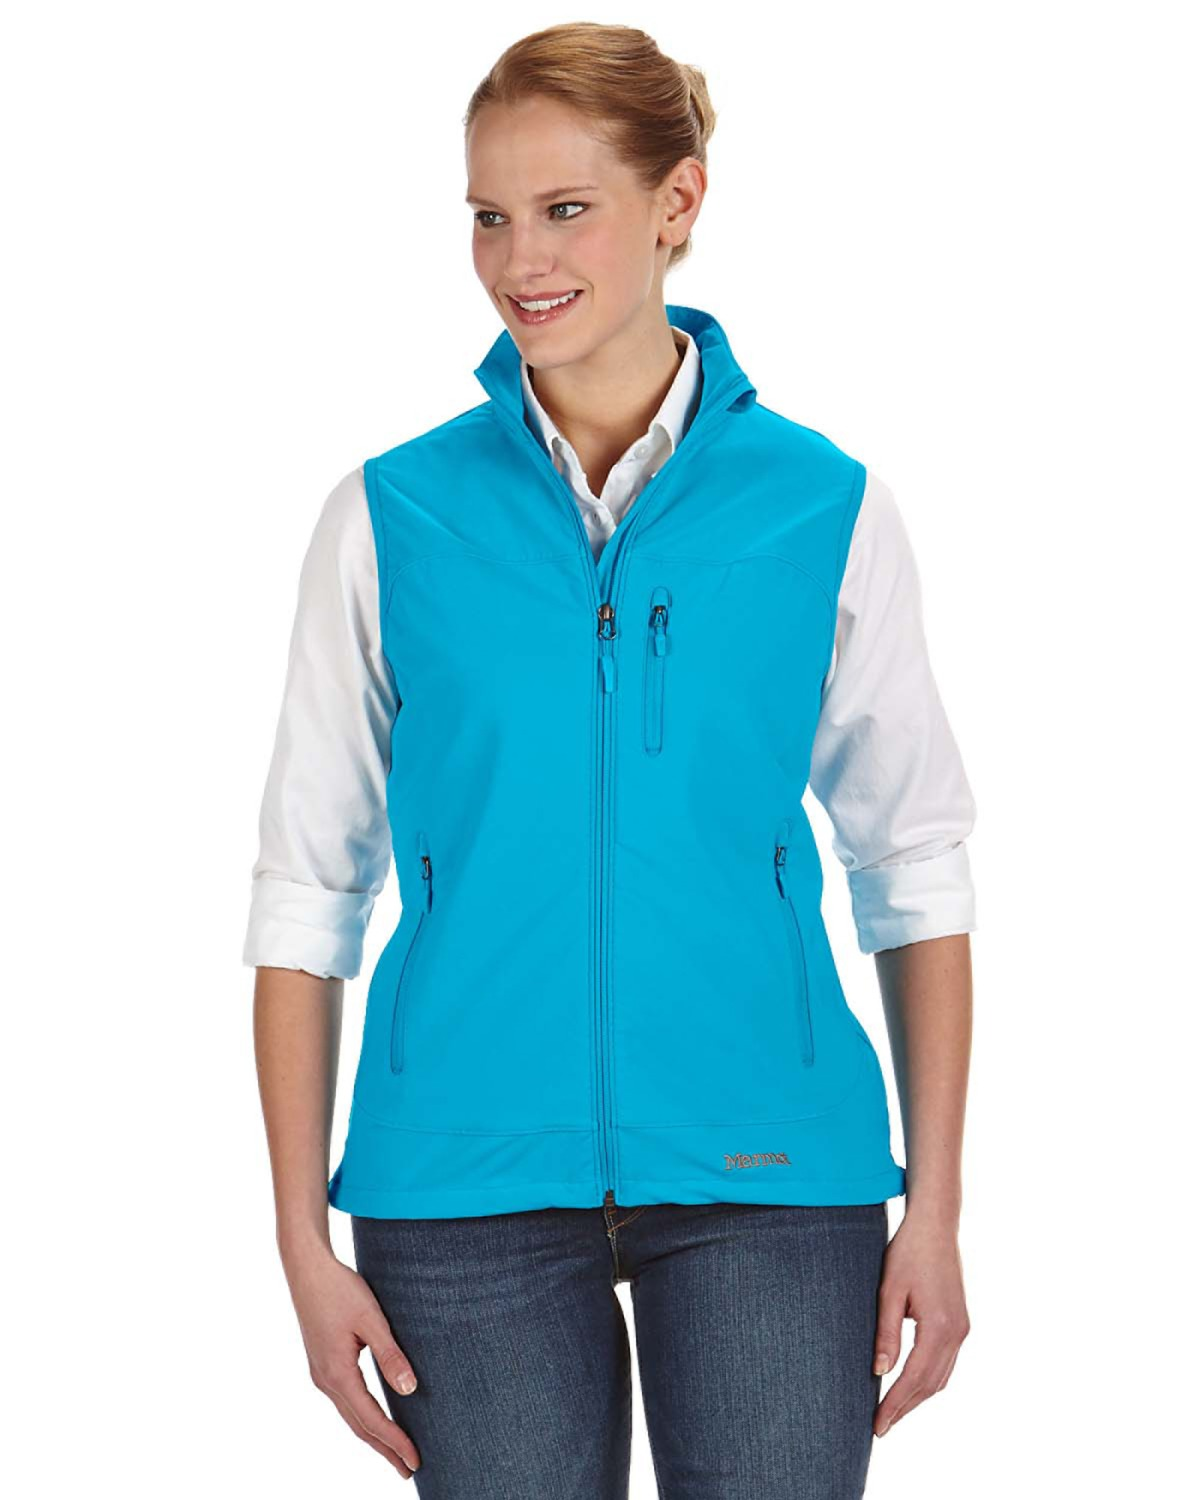 Marmot - 98220, Ladies' Tempo Vest, Embroidery, Screen Printing - Logo Masters International